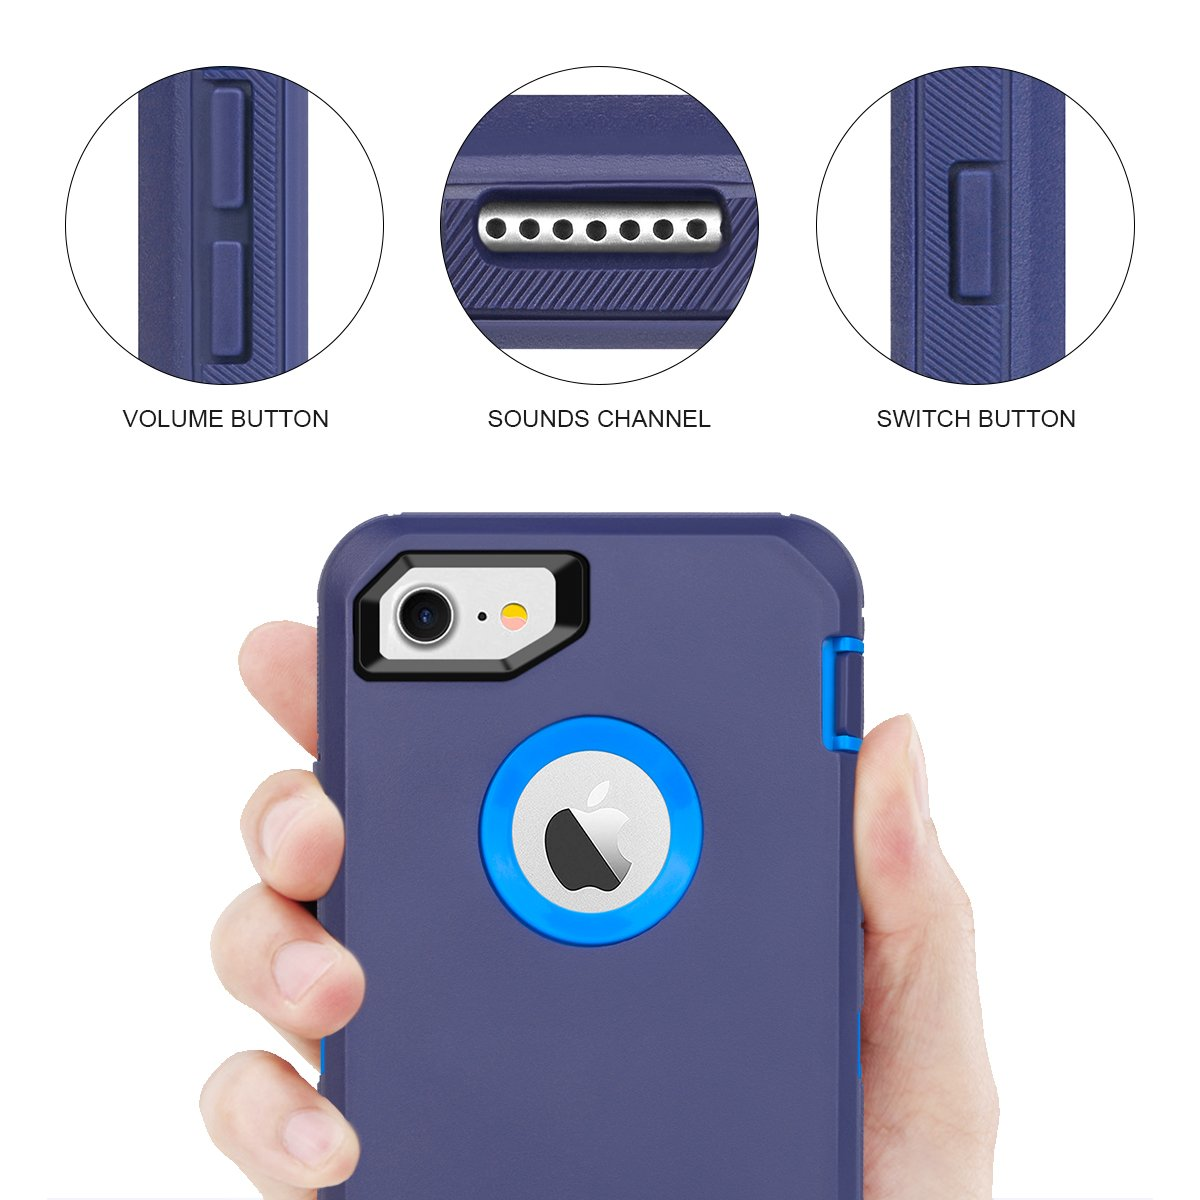 Heavy Duty Shockproof Series Case for iPhone 7//8 4.7 with Built-in Screen Protector Without Belt Clip Black iPhone 8 Case MAXCURY iPhone 7 Defender Case